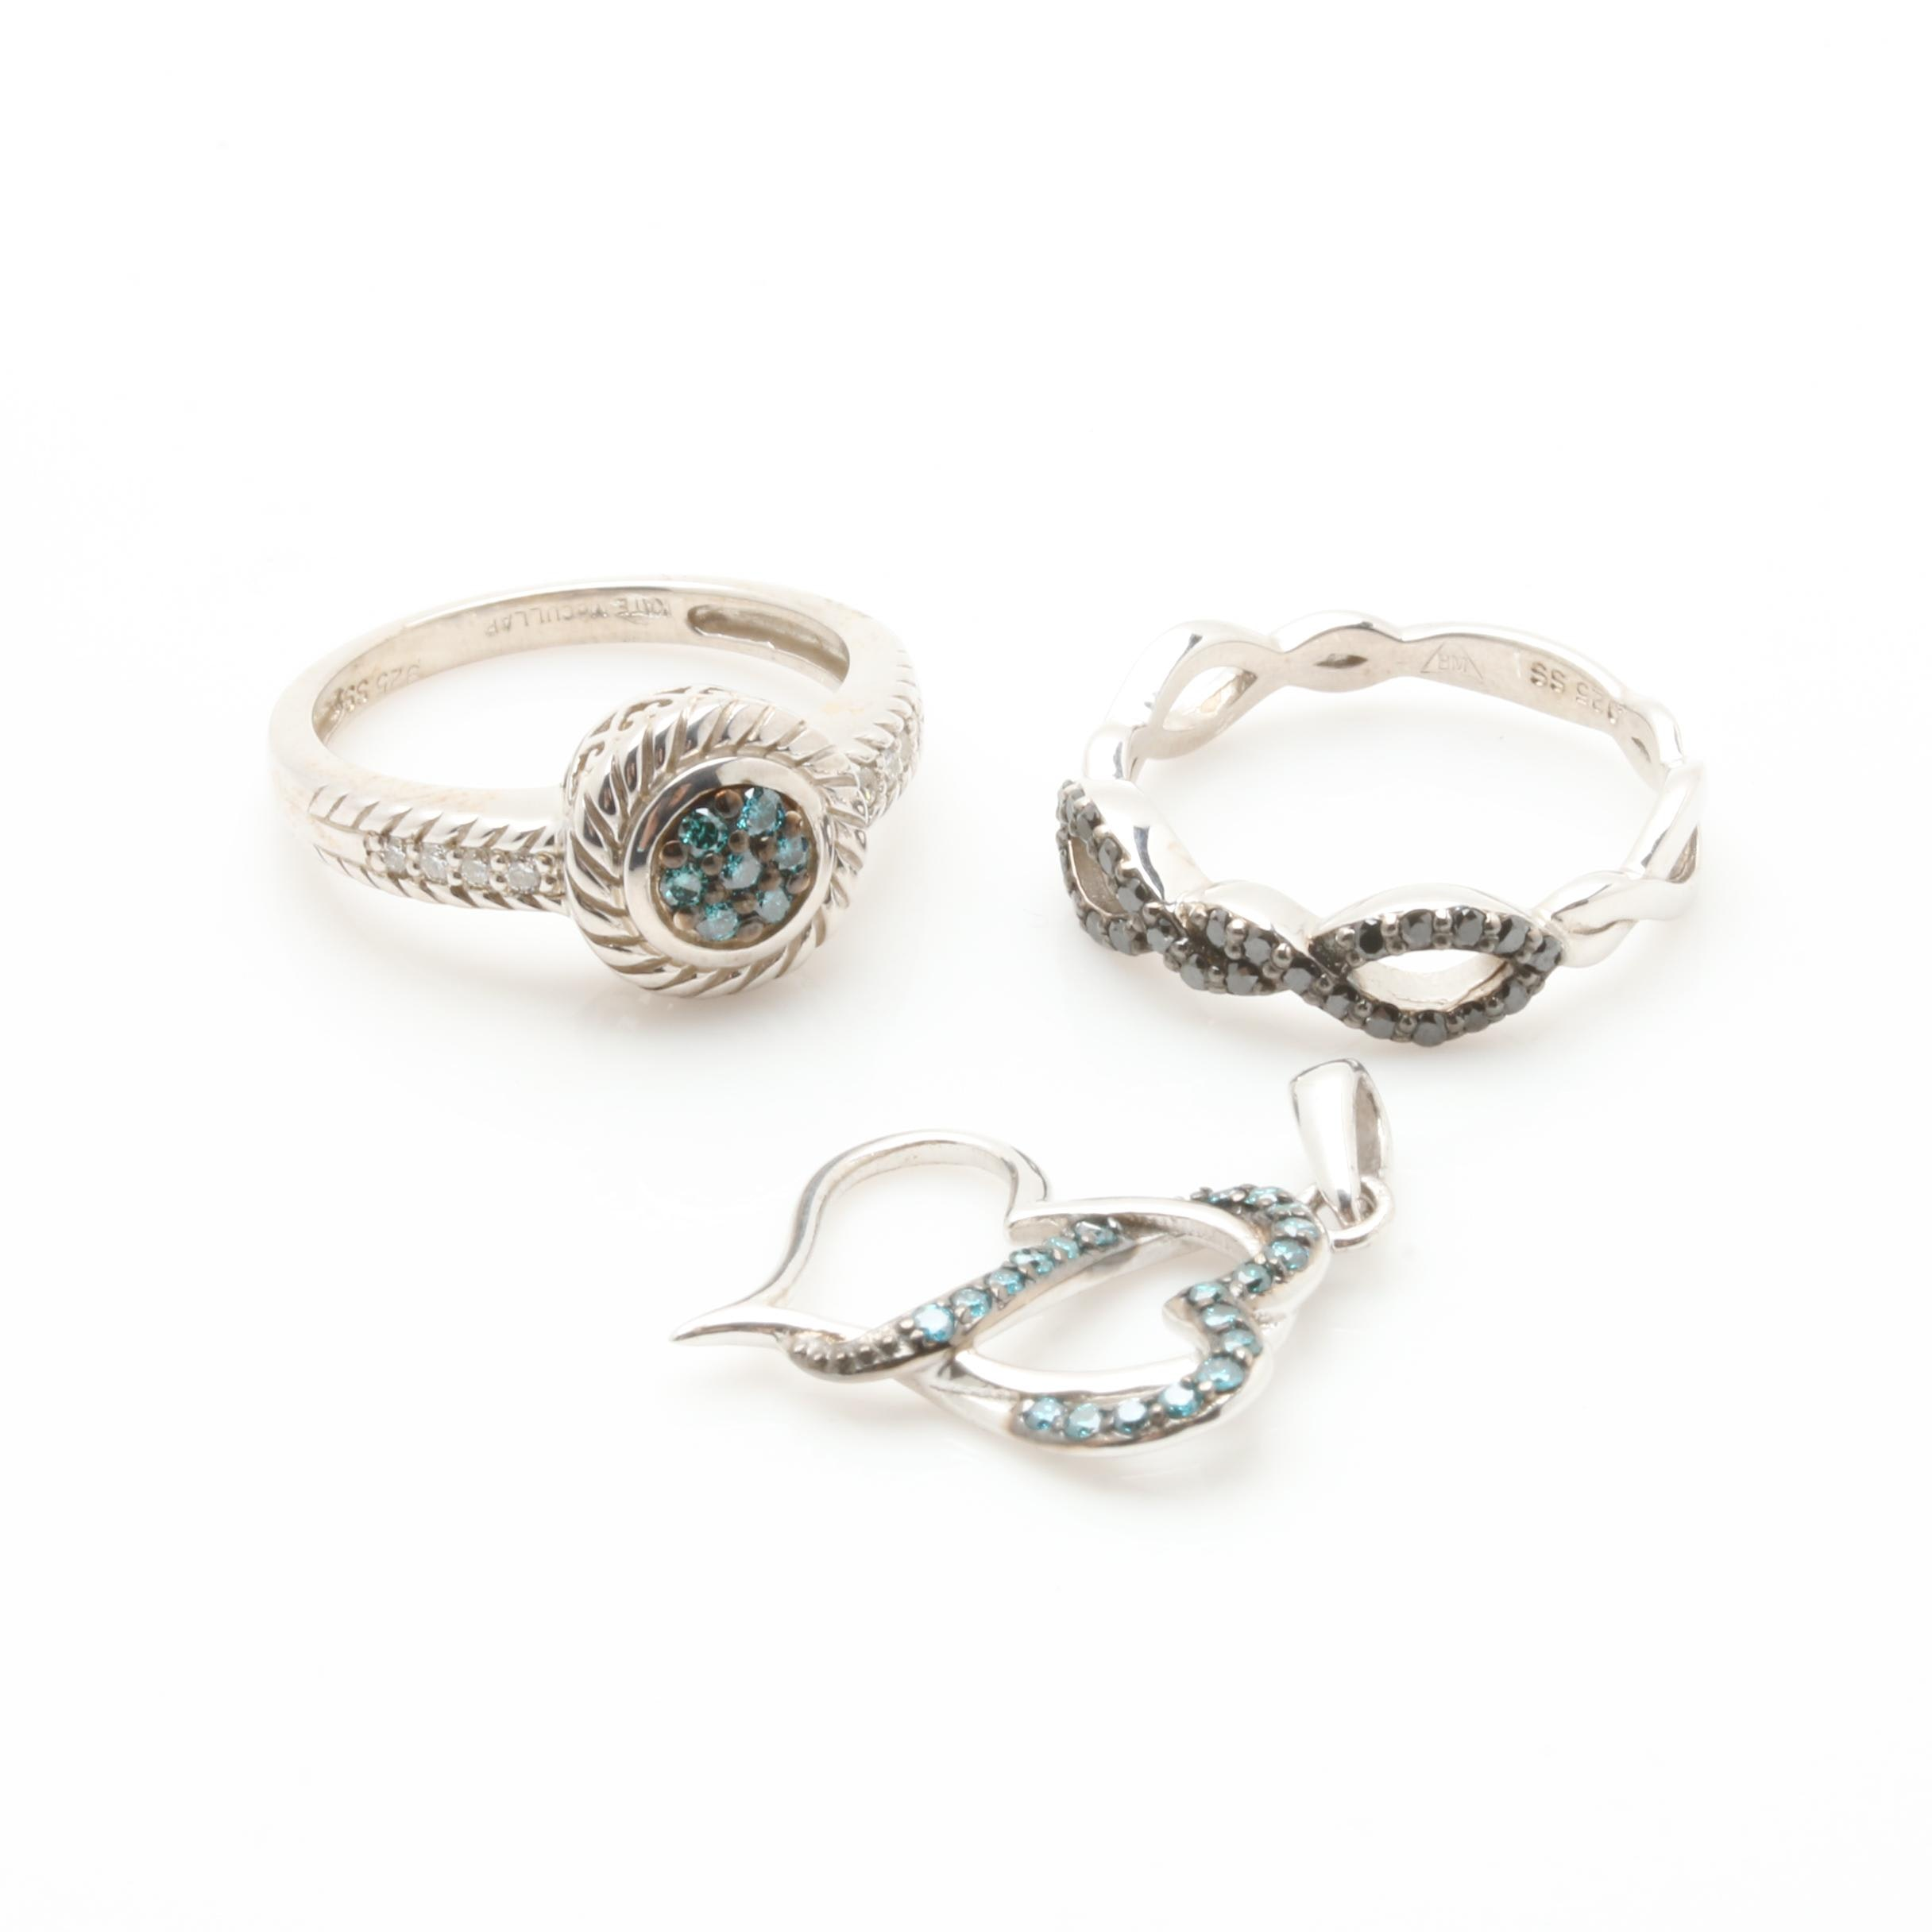 Sterling Silver Diamond Rings and Pendant Including Kate McCullar